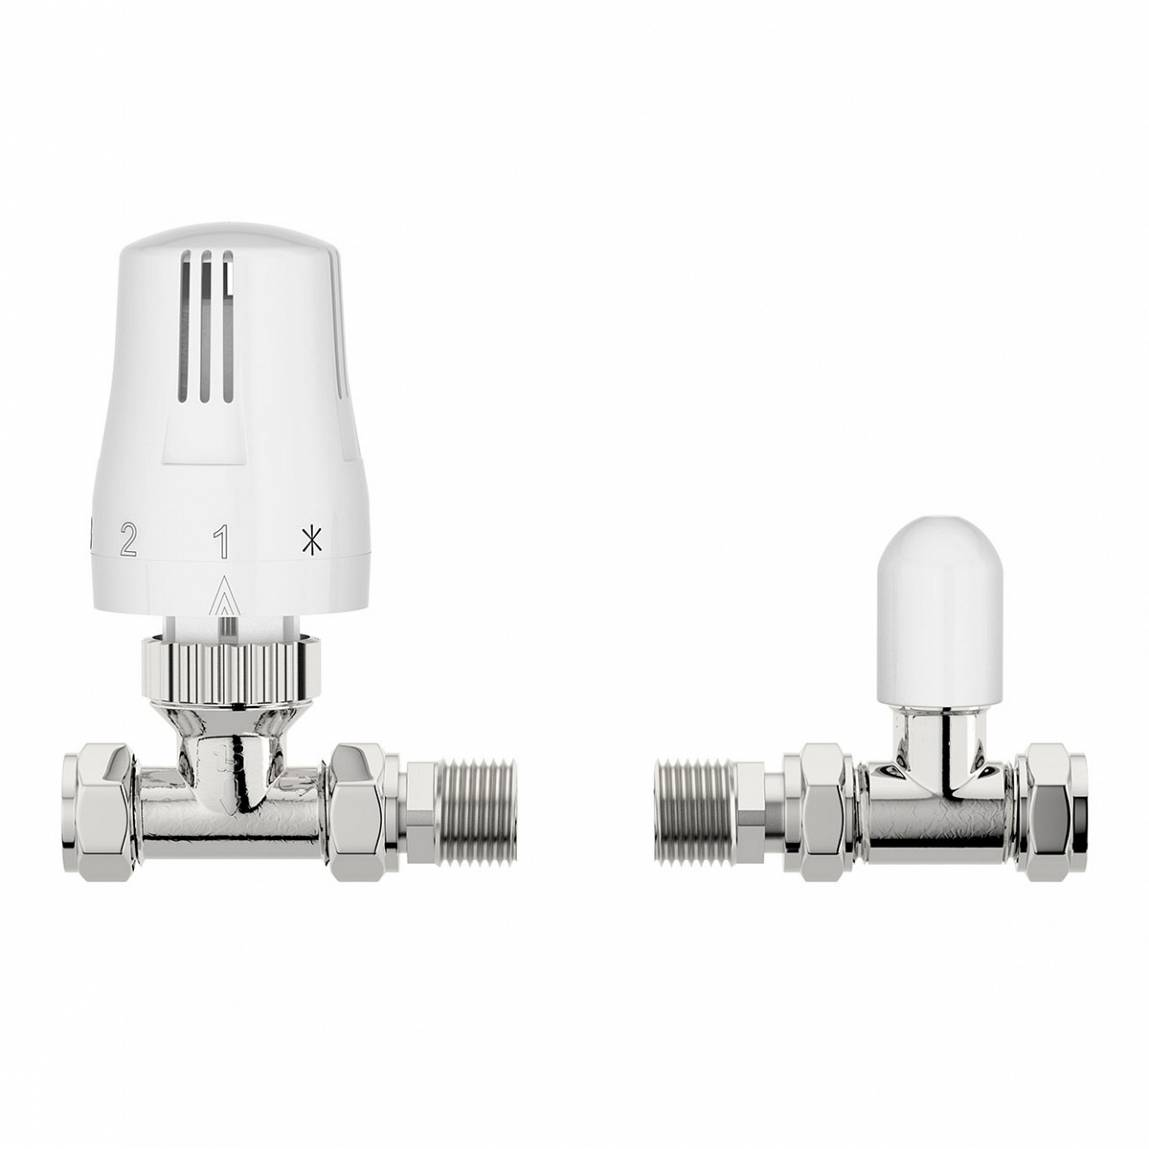 Image of Thermostatic White Straight Radiator Valves